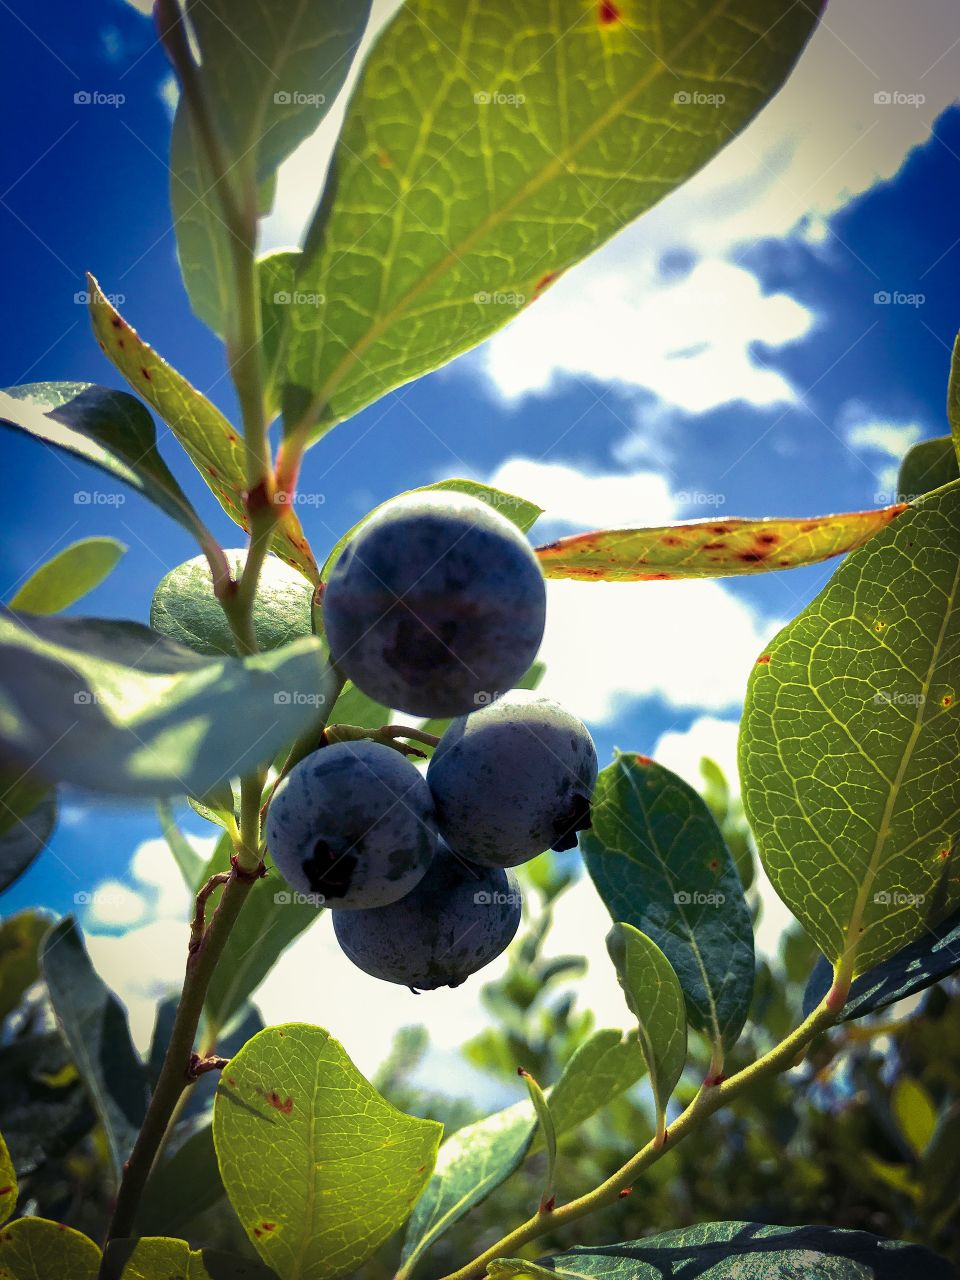 Beautiful Blueberries, ripe for the pickin'